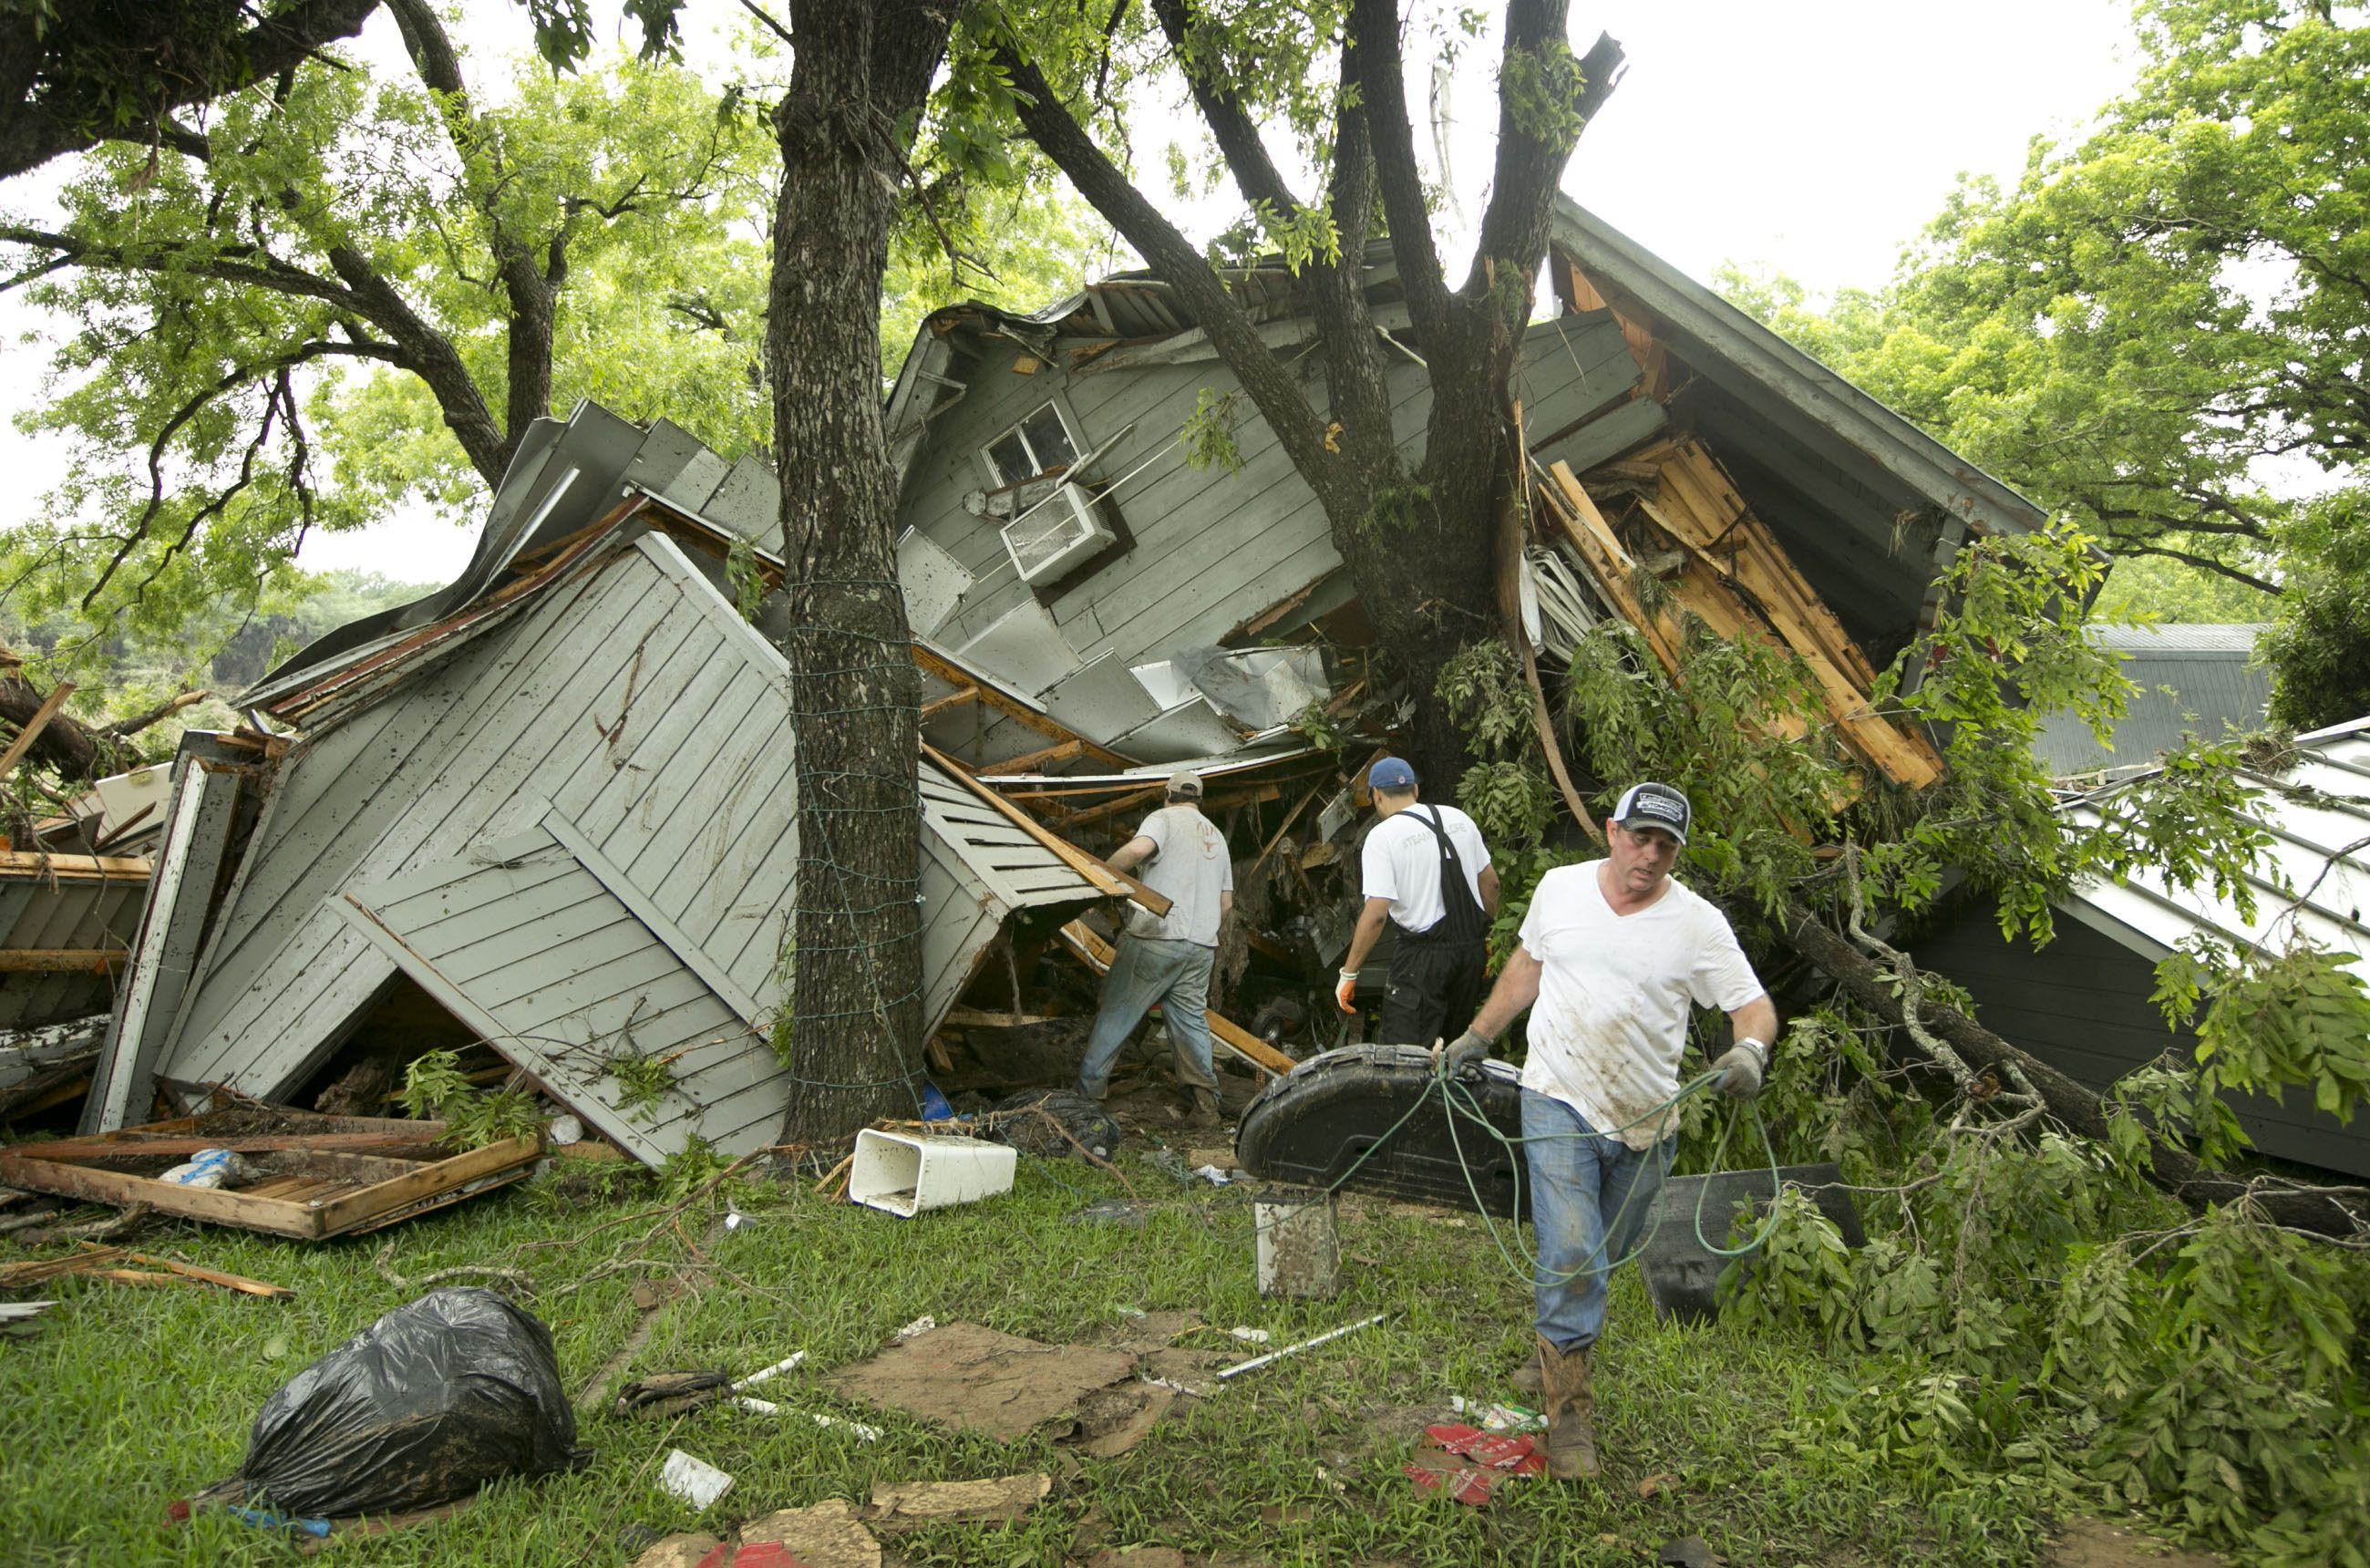 ... from Mother's Arms in Mexican Border City, Texas Ravaged by Storms